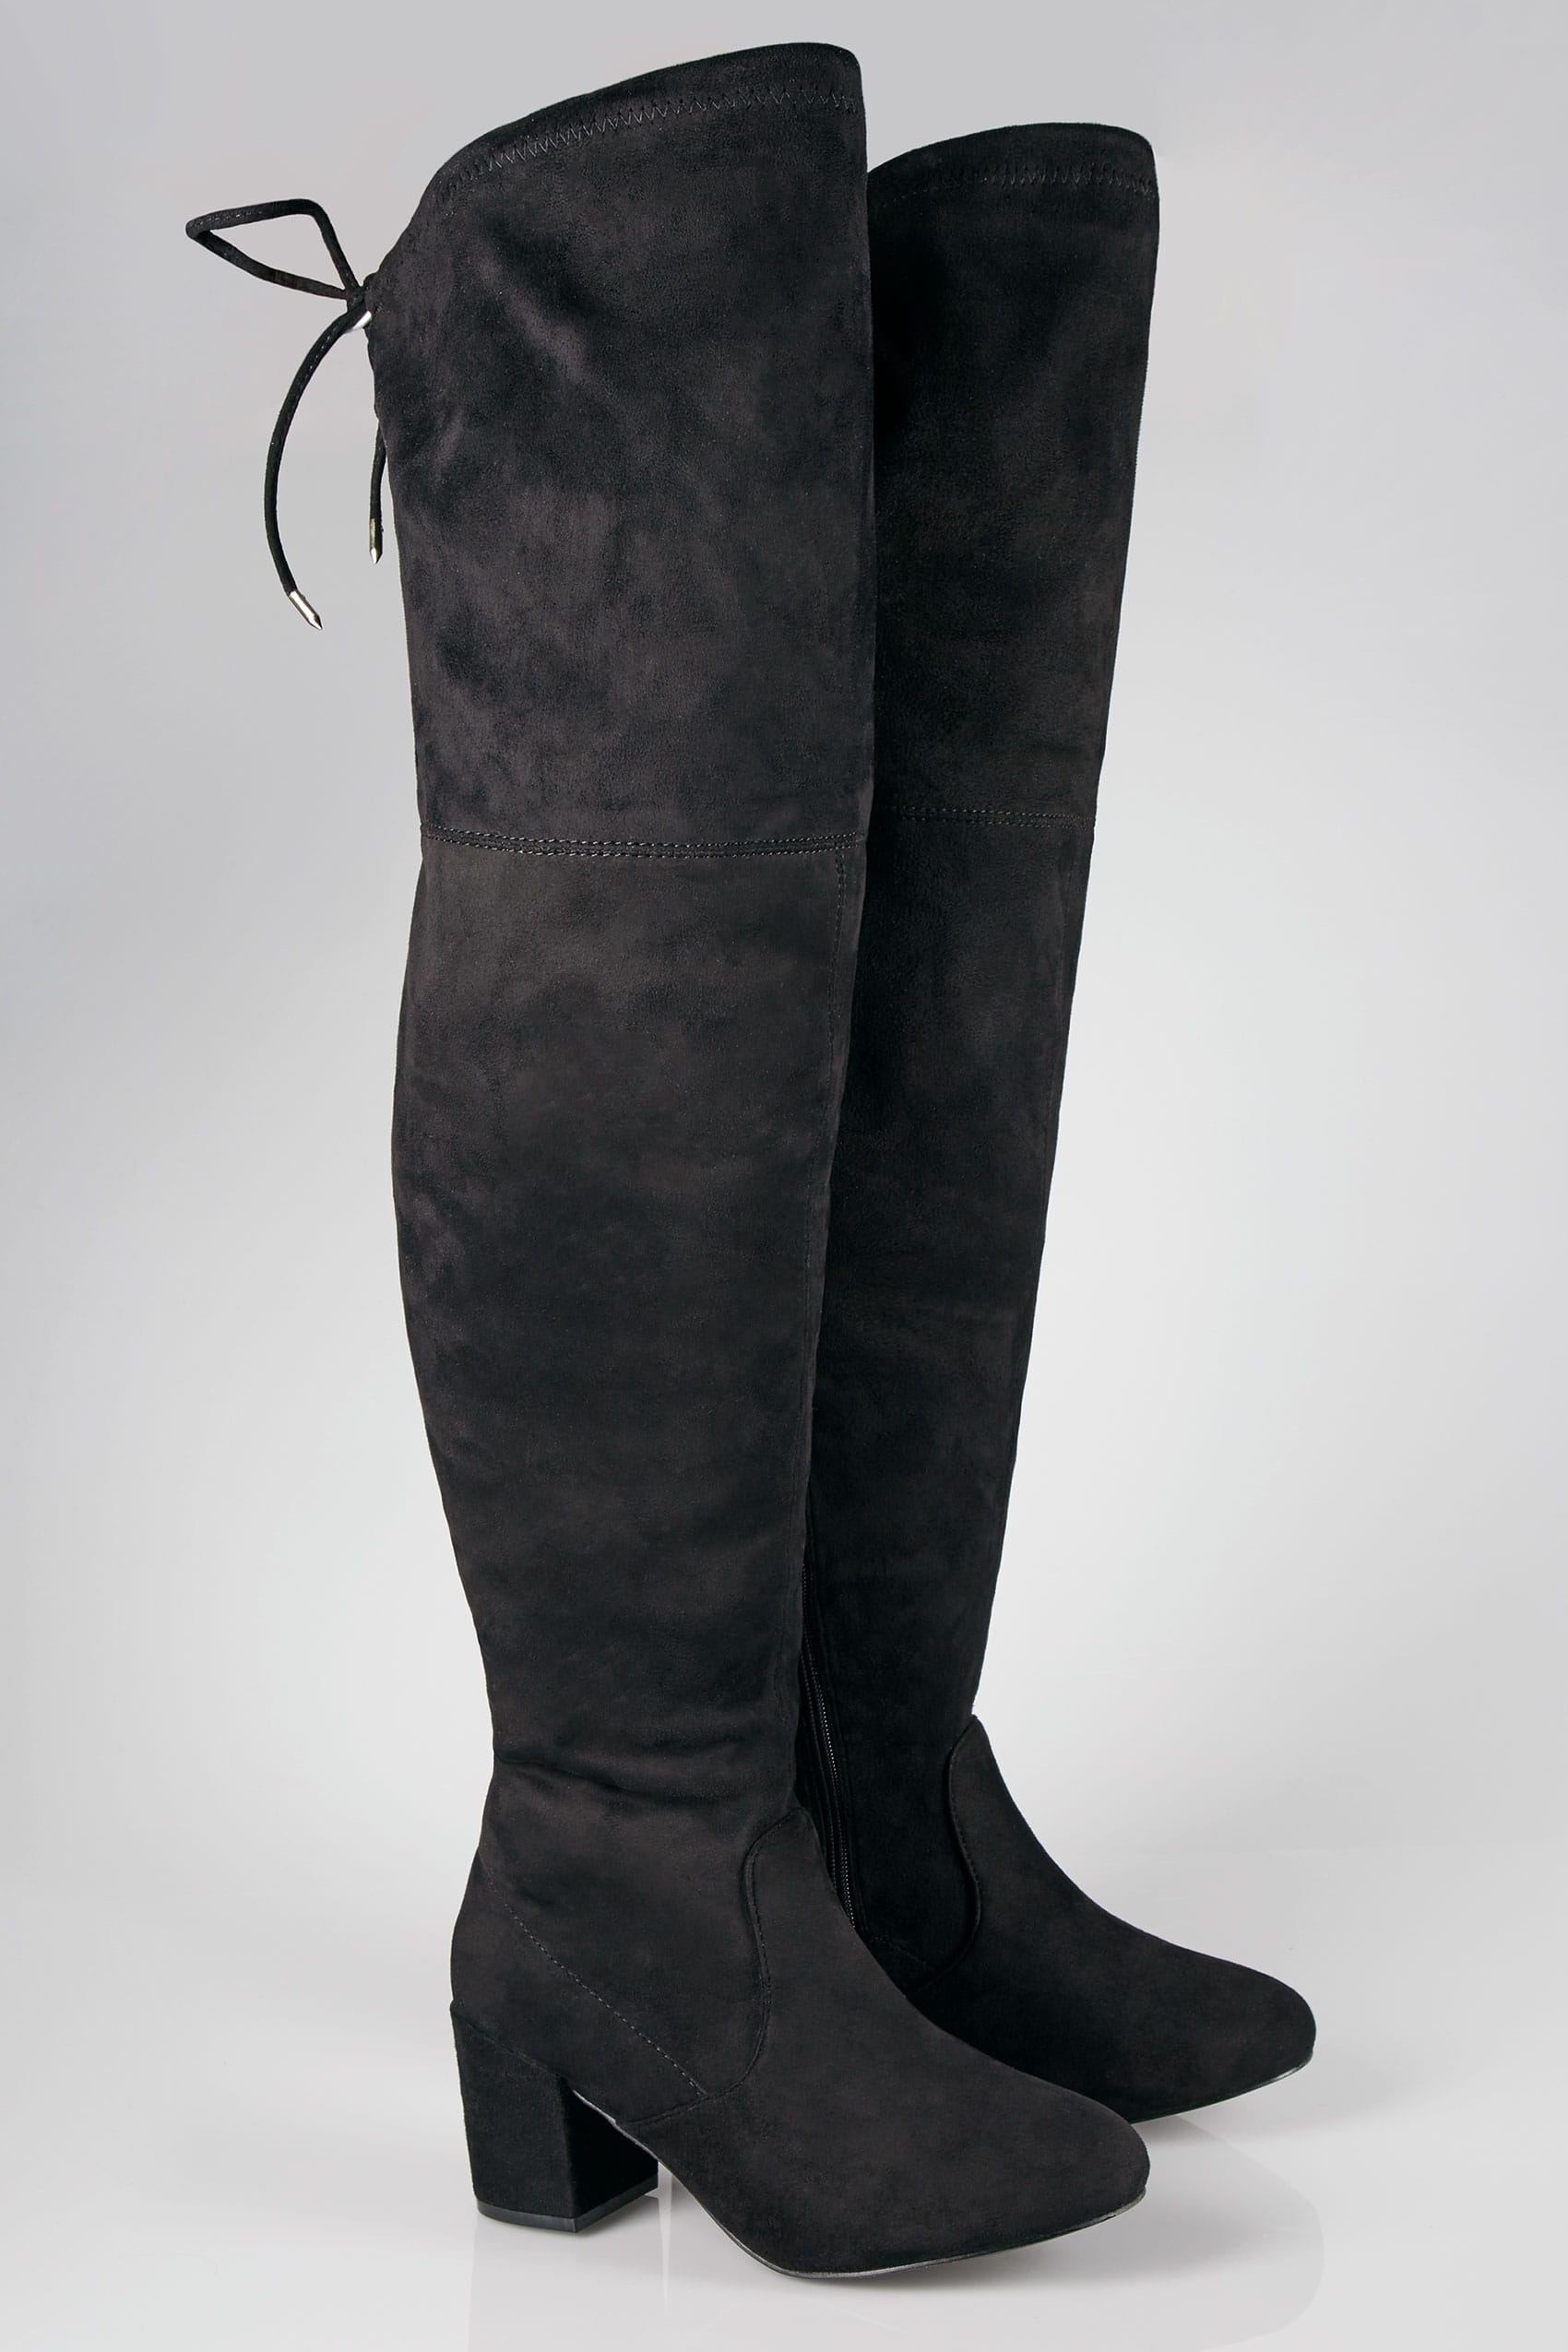 84d537efef1 Black Over The Knee Boots In EEE Fit